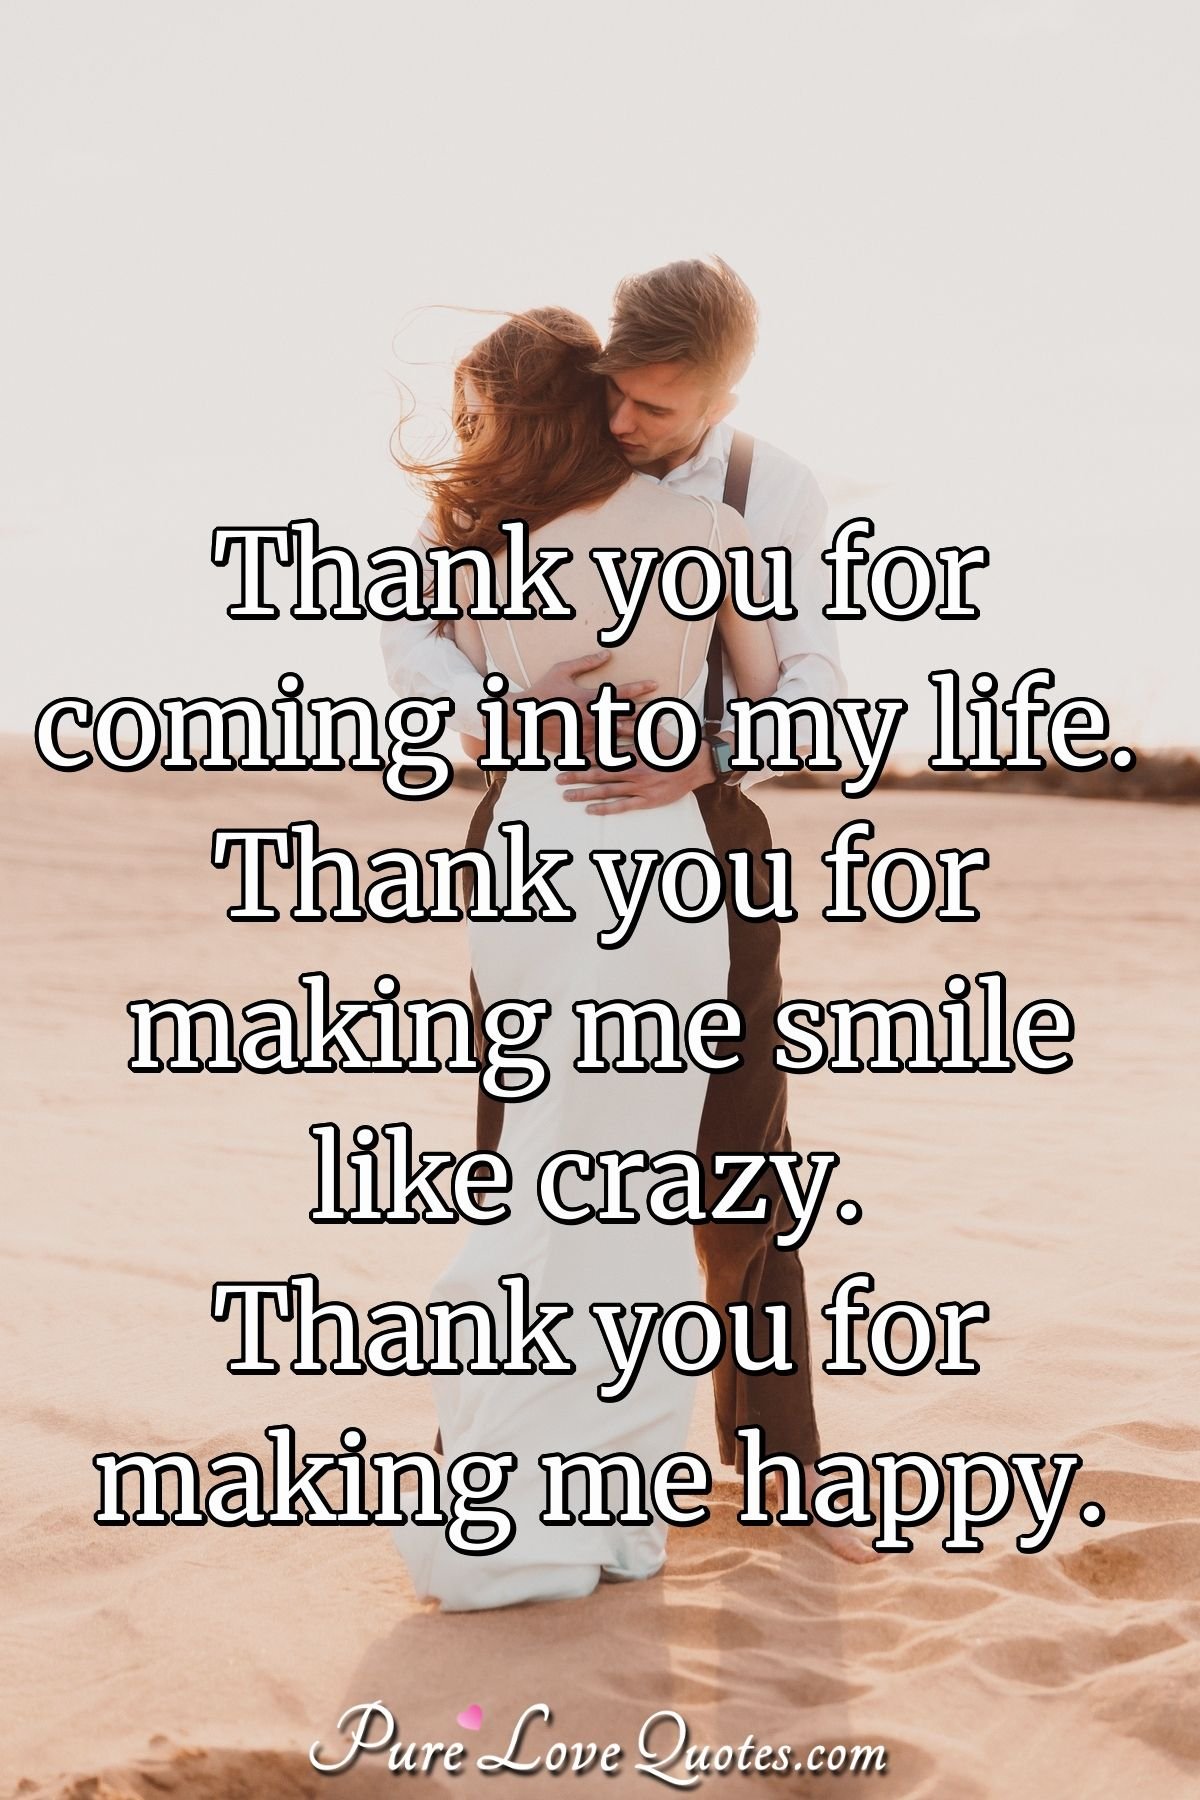 Thank you for coming into my life. Thank you for making me ...